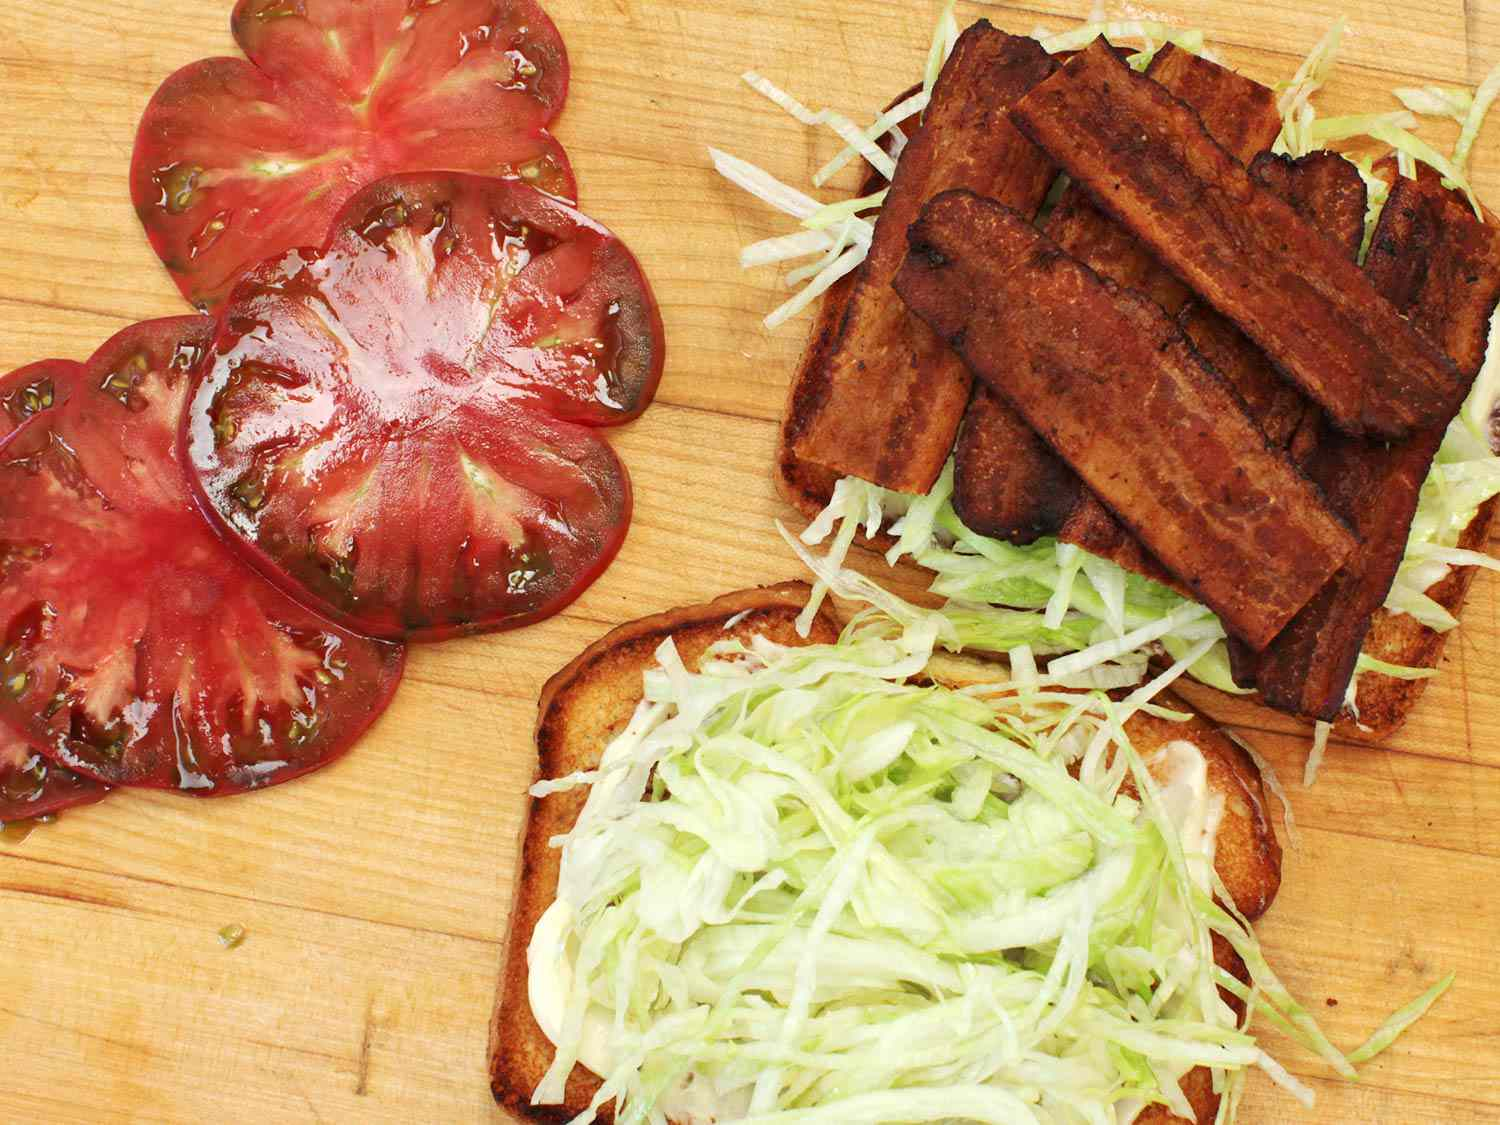 Assembling a BLT: sliced tomato next to a slice of toasted bread piled with mayo and shredded lettuce and another toast slice layered with bacon and lettuce